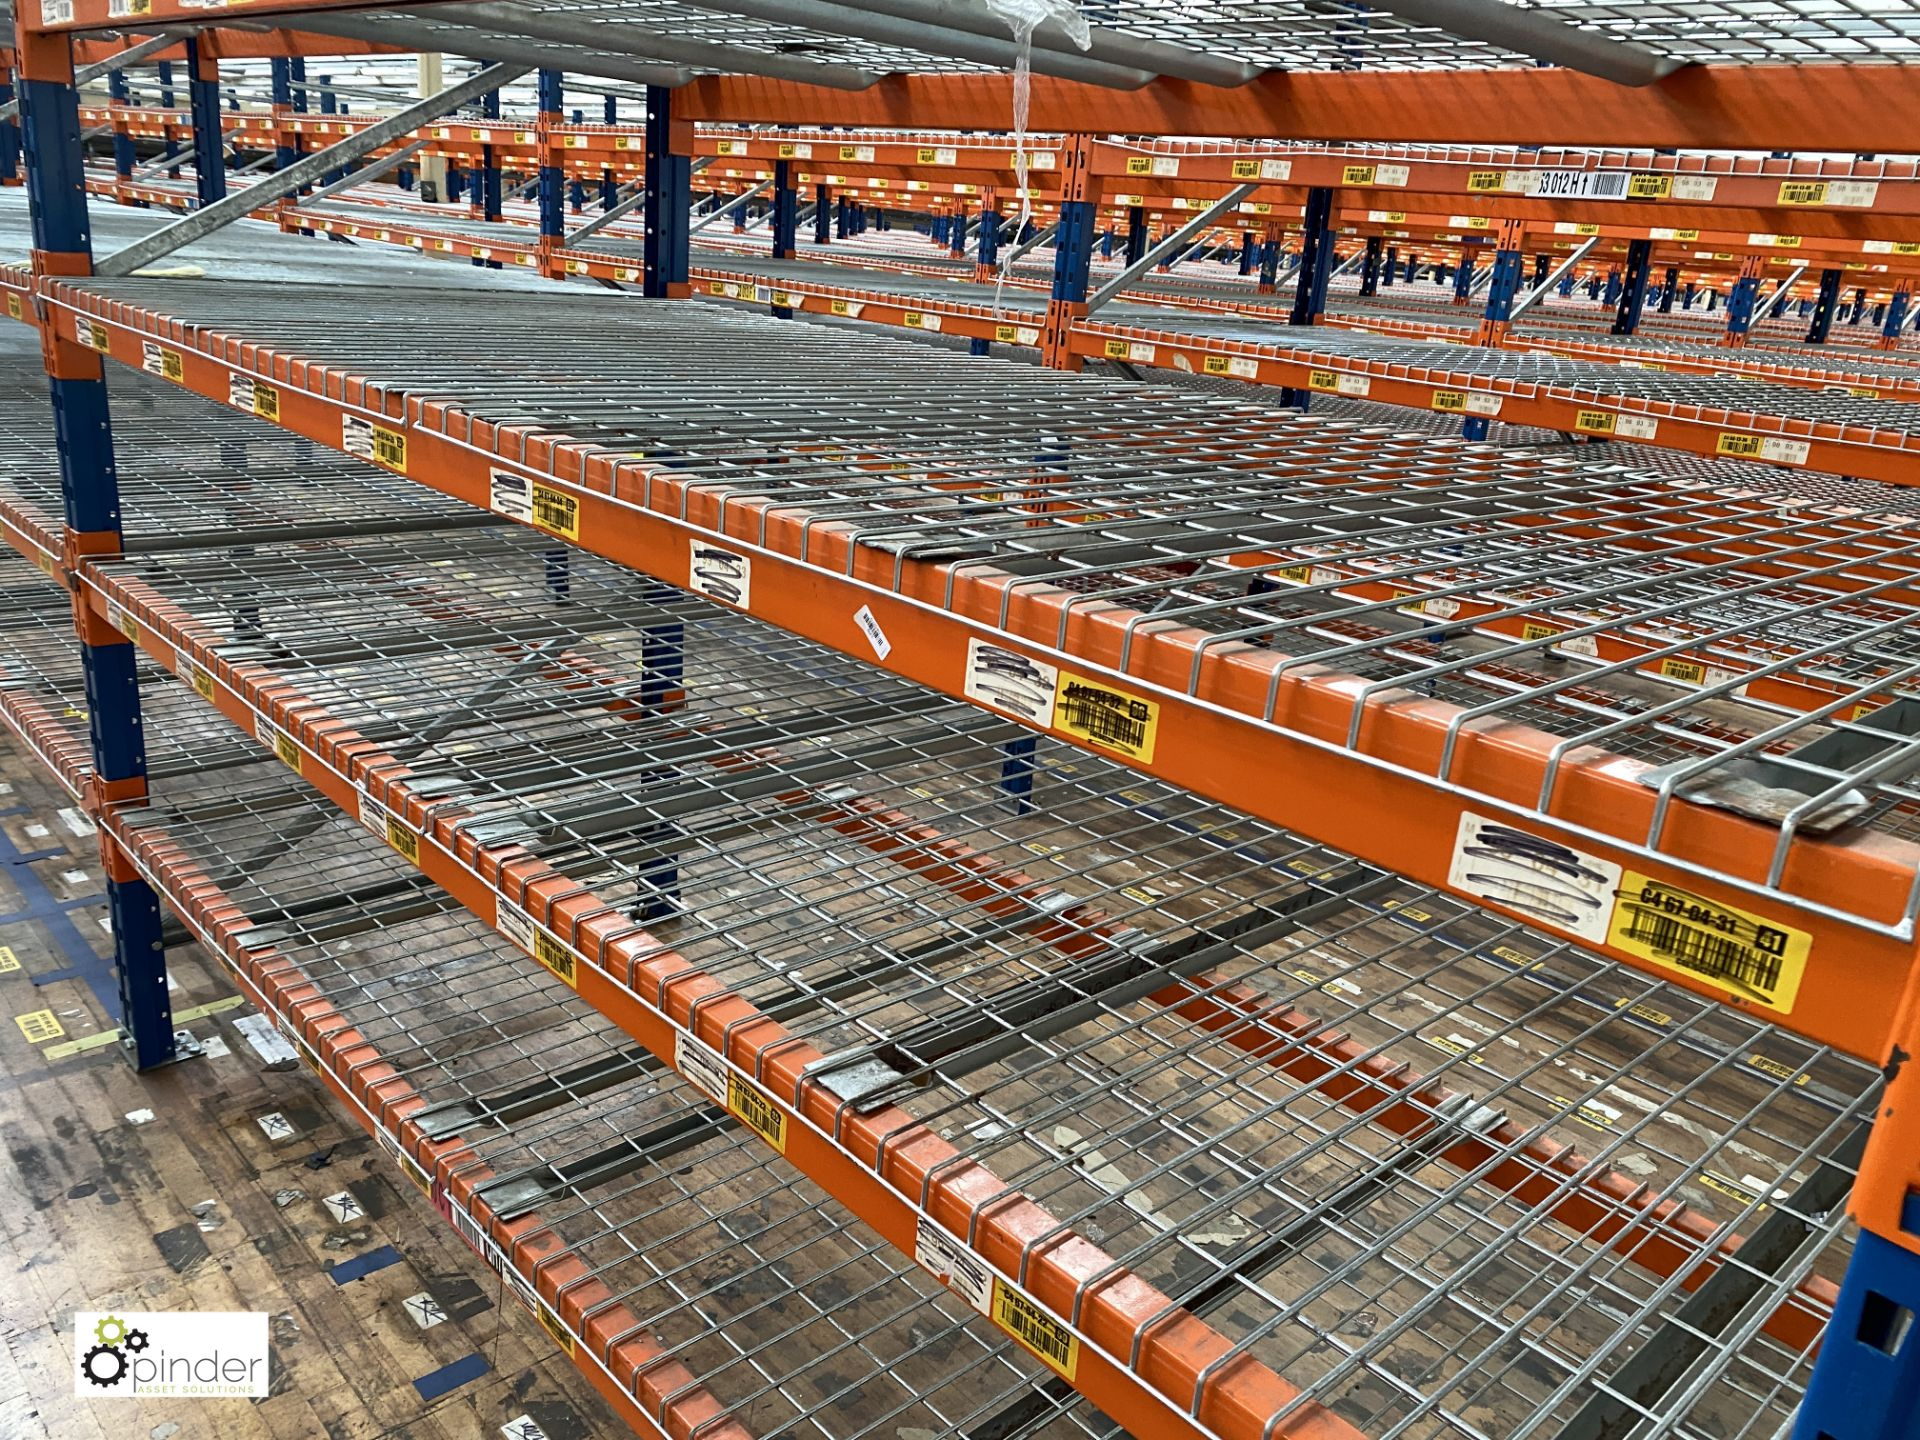 7 bays PSS 2K85 16 boltless Stock Racking, comprising 8 uprights 2400mm x 1200mm, 56 beams 2700mm, - Image 3 of 4